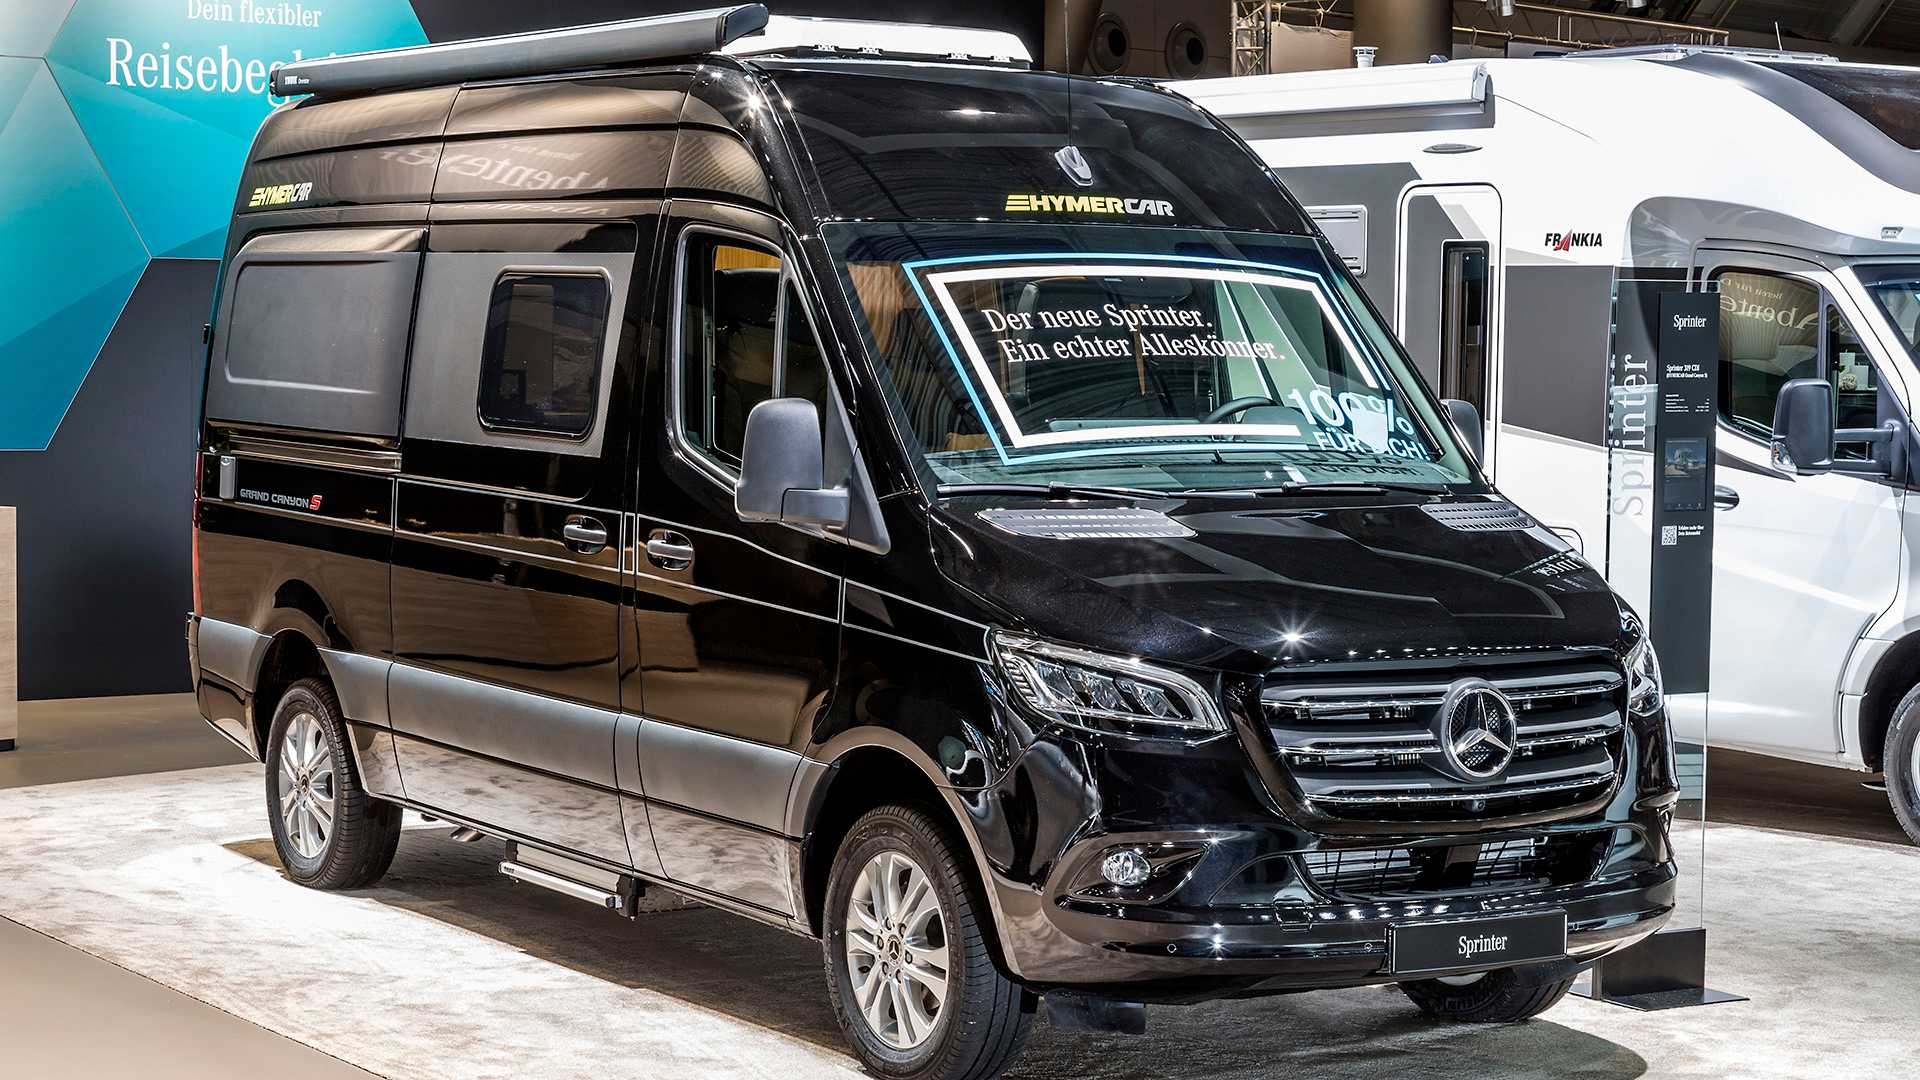 Hymer USA Launches To Bring Europe's Best RVs To The U.S.